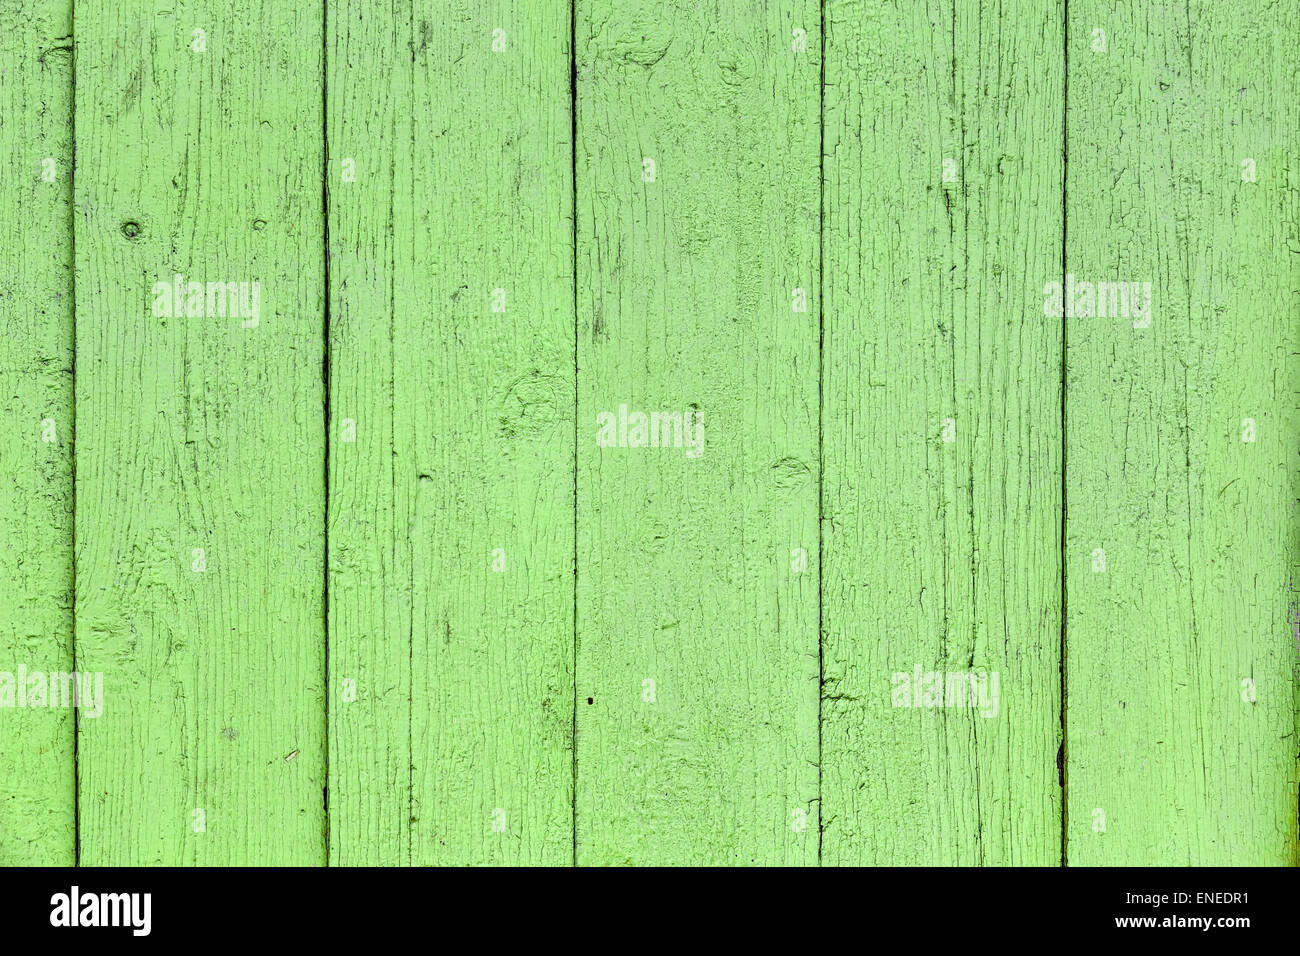 Green Wood Planks Vintage Or Grunge Background Texture Stock Photo